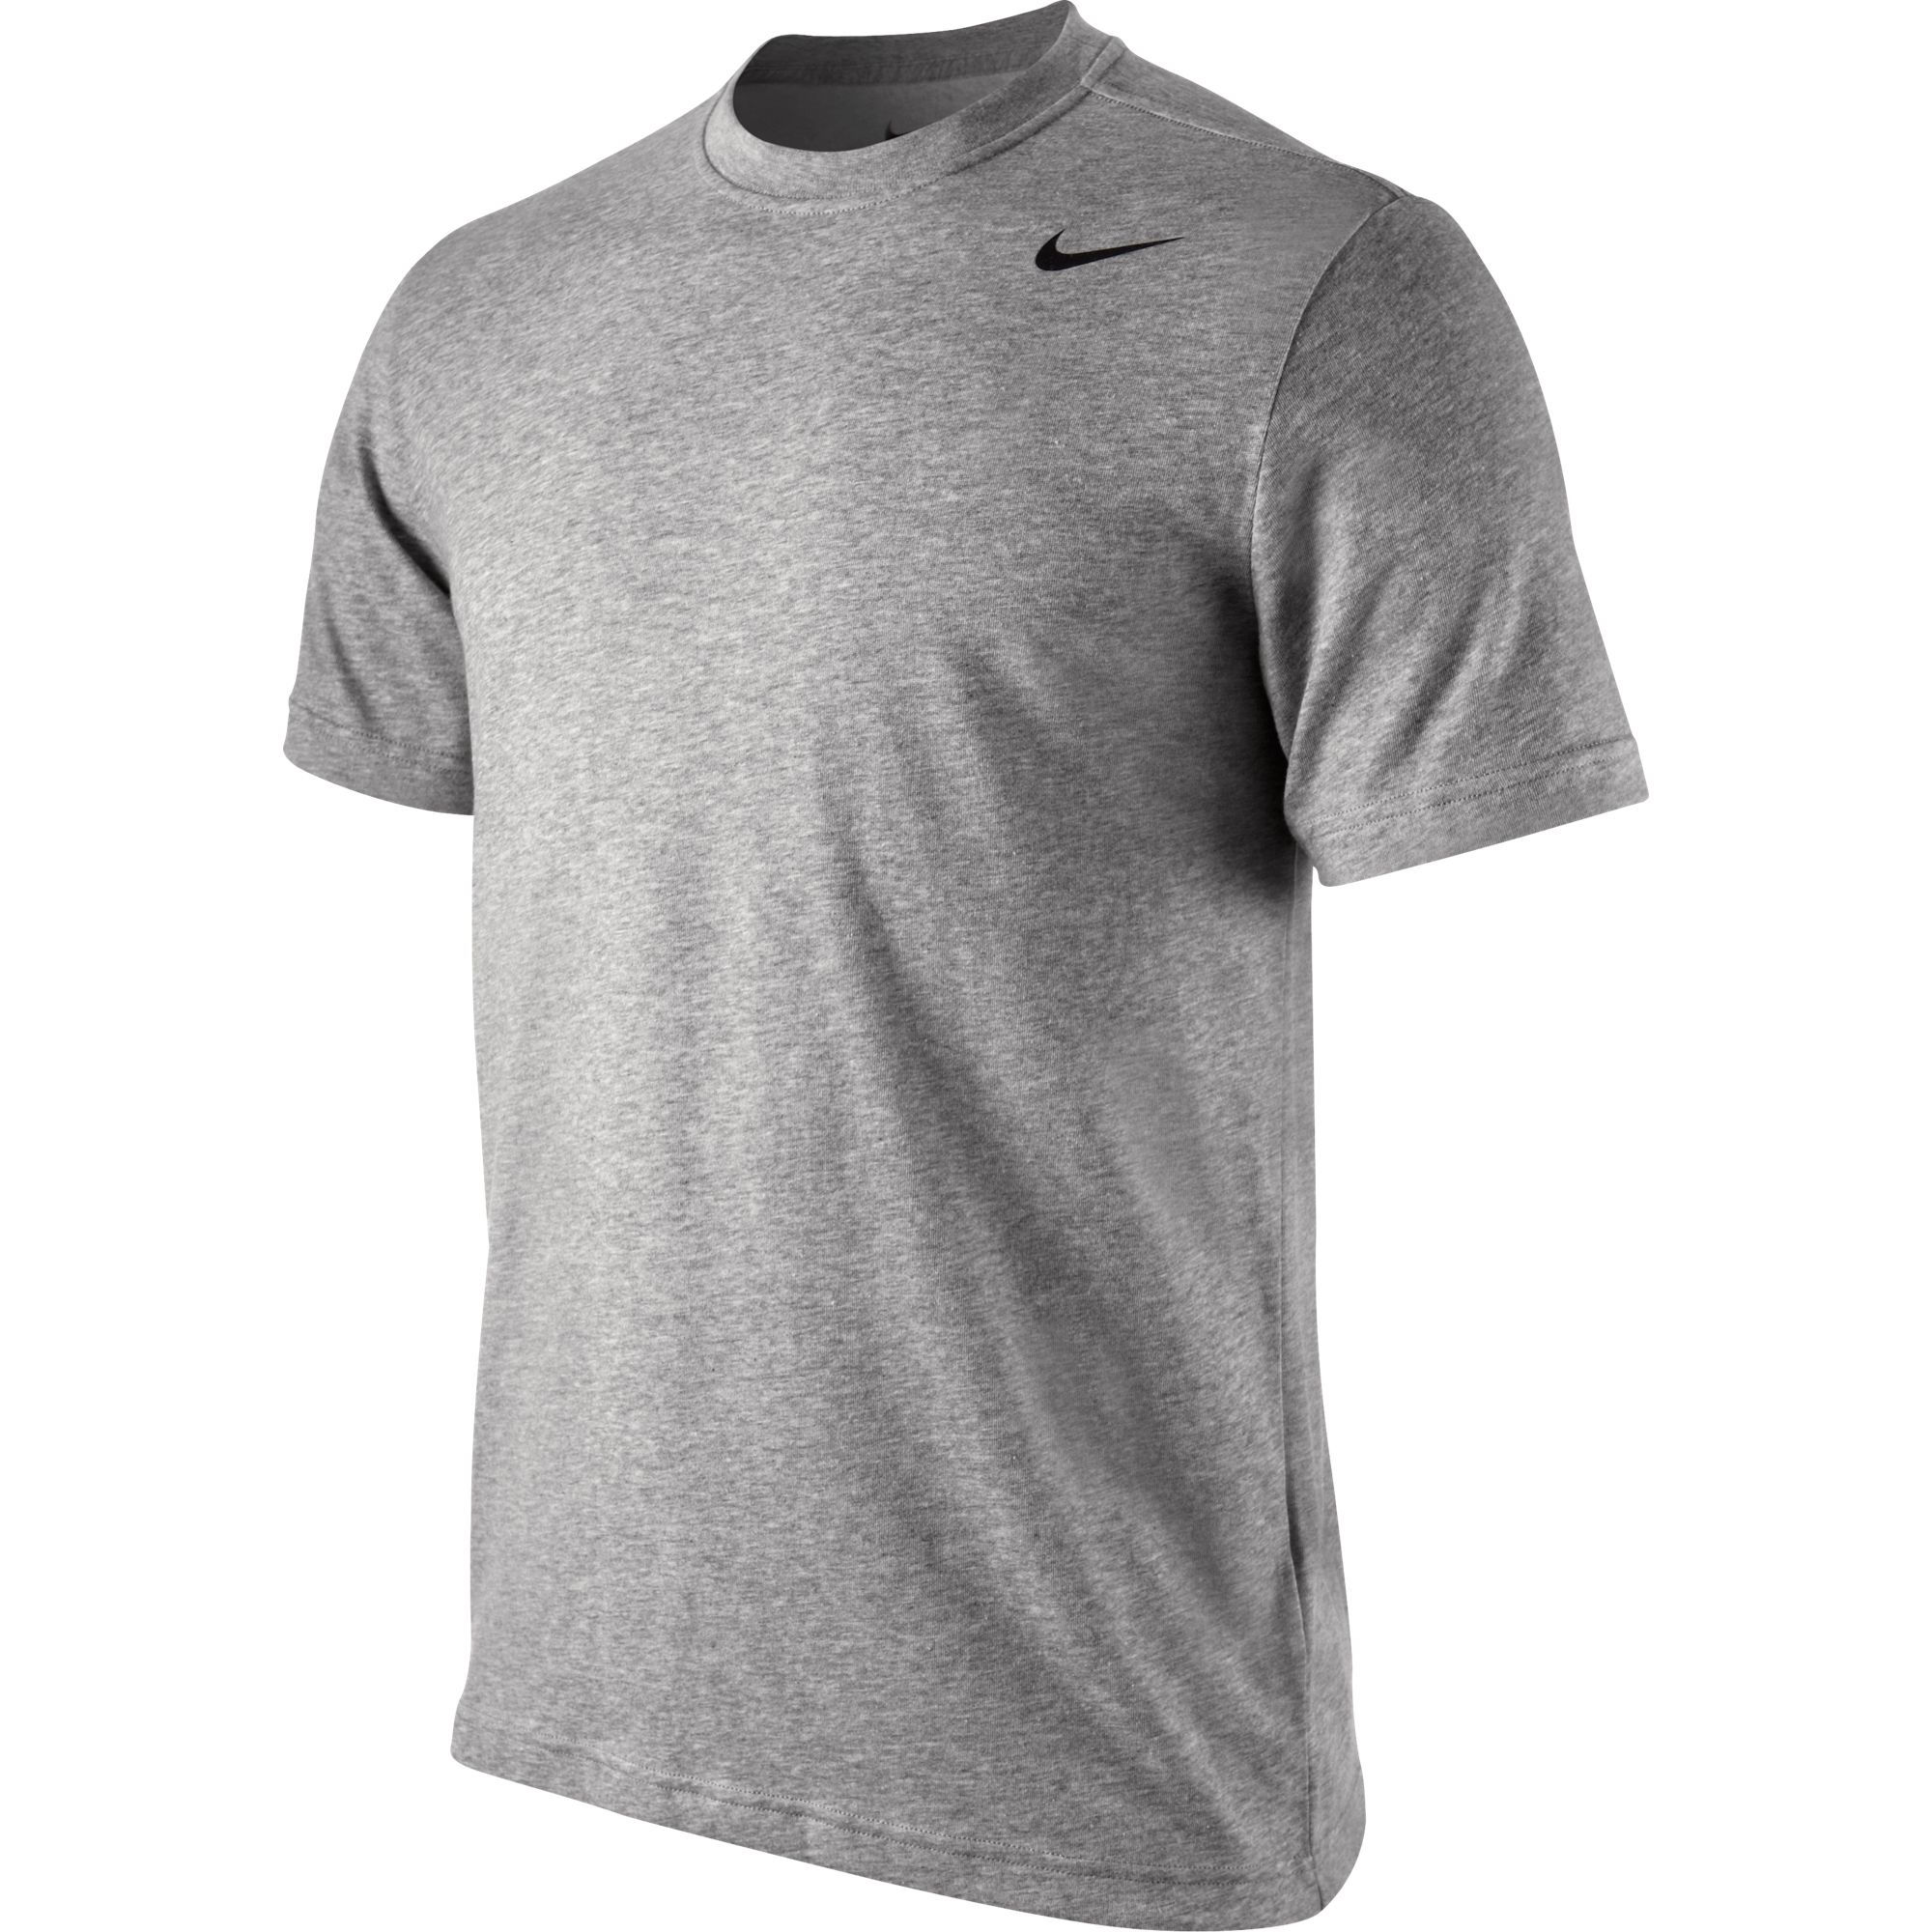 wiggle nike dri fit cotton short sleeve tee 2 0 su14 running short sleeve tops. Black Bedroom Furniture Sets. Home Design Ideas